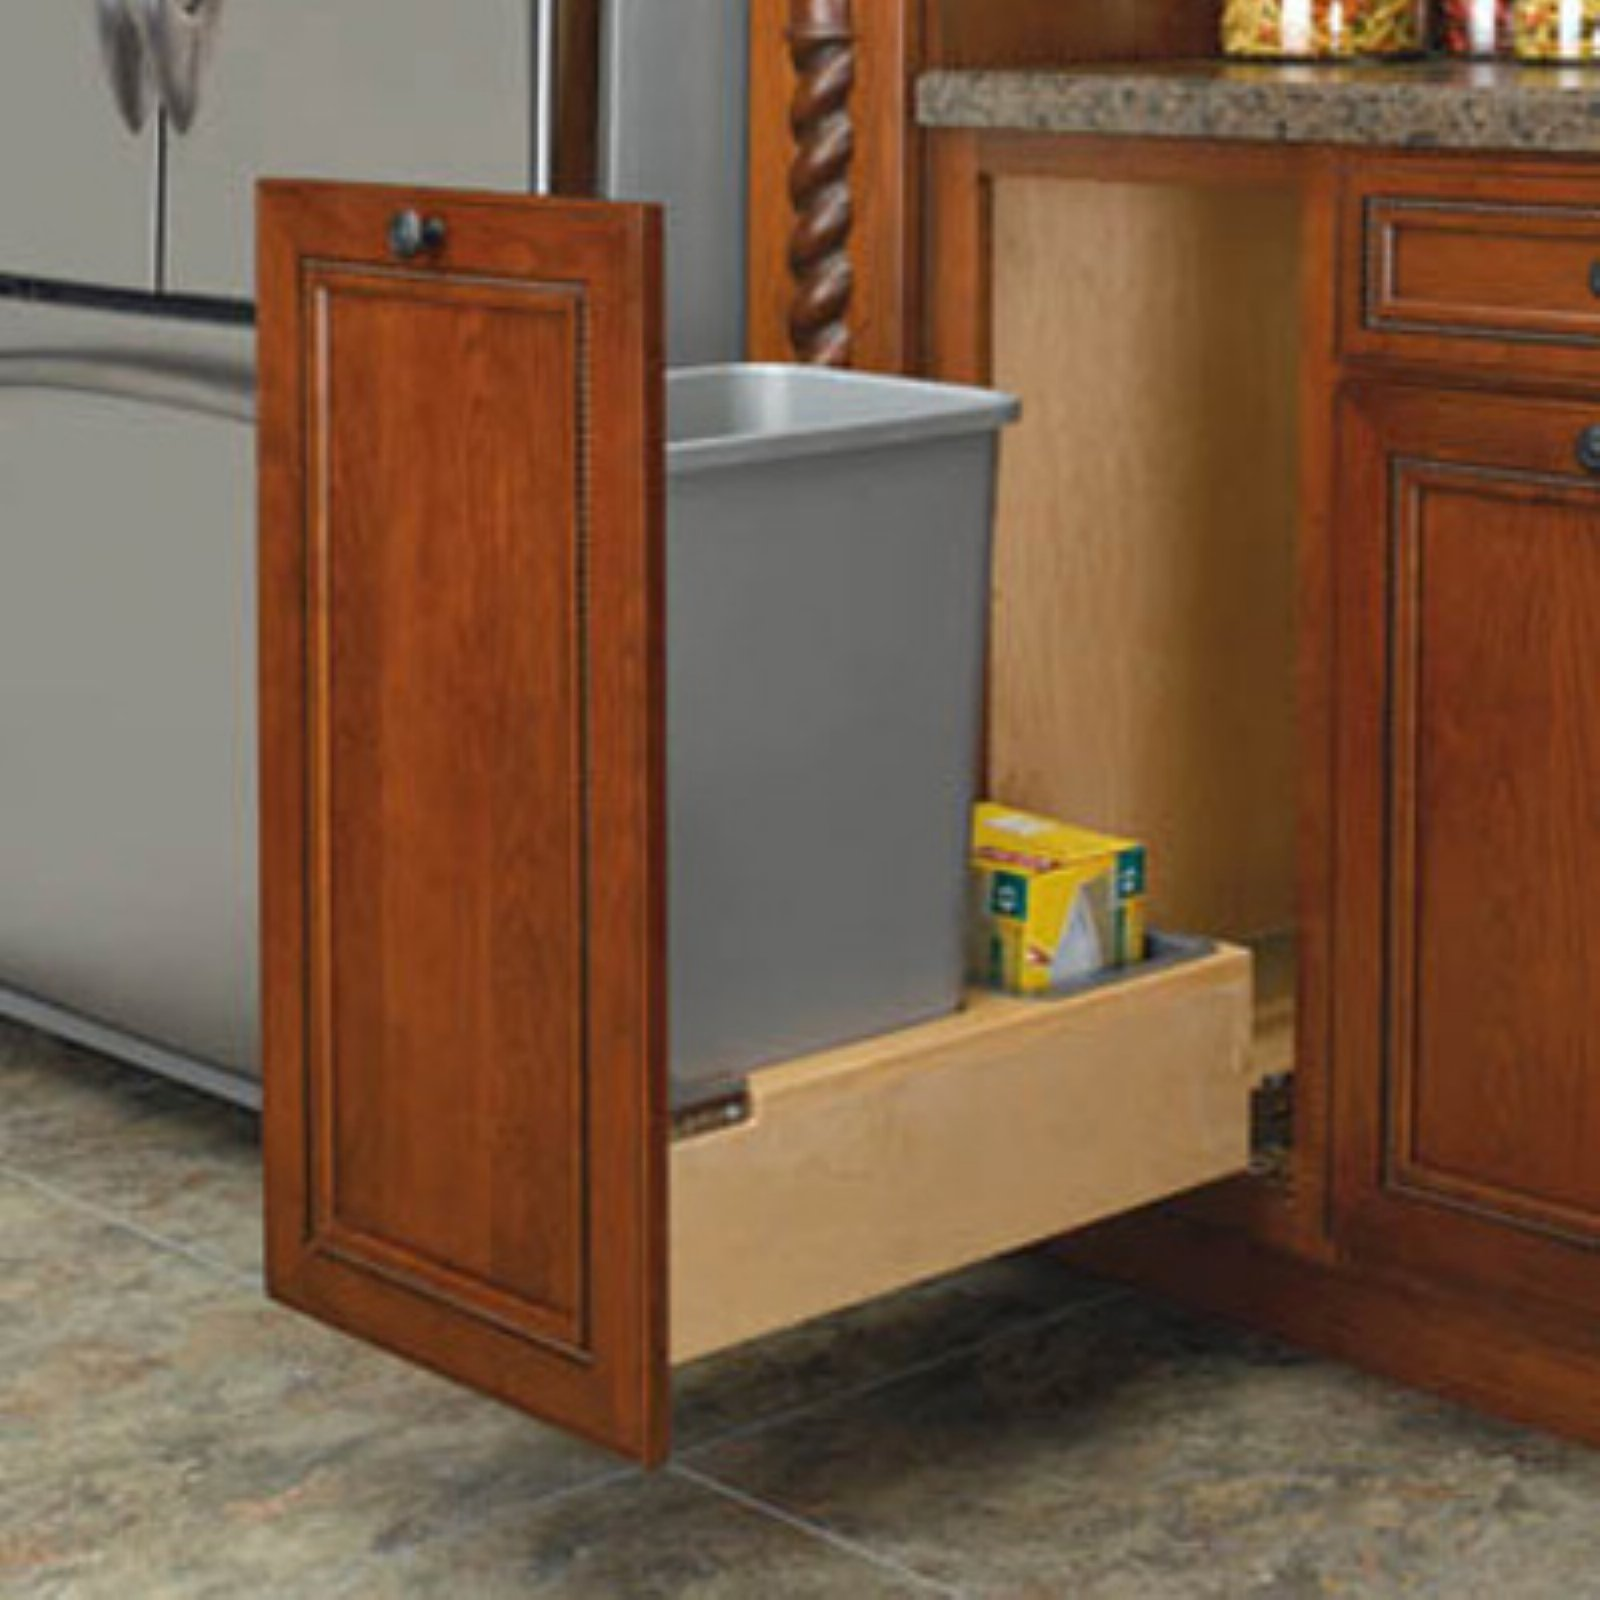 Rev-A-Shelf Single Rev-A-Motion Pull Out 50 qt. Trash Can